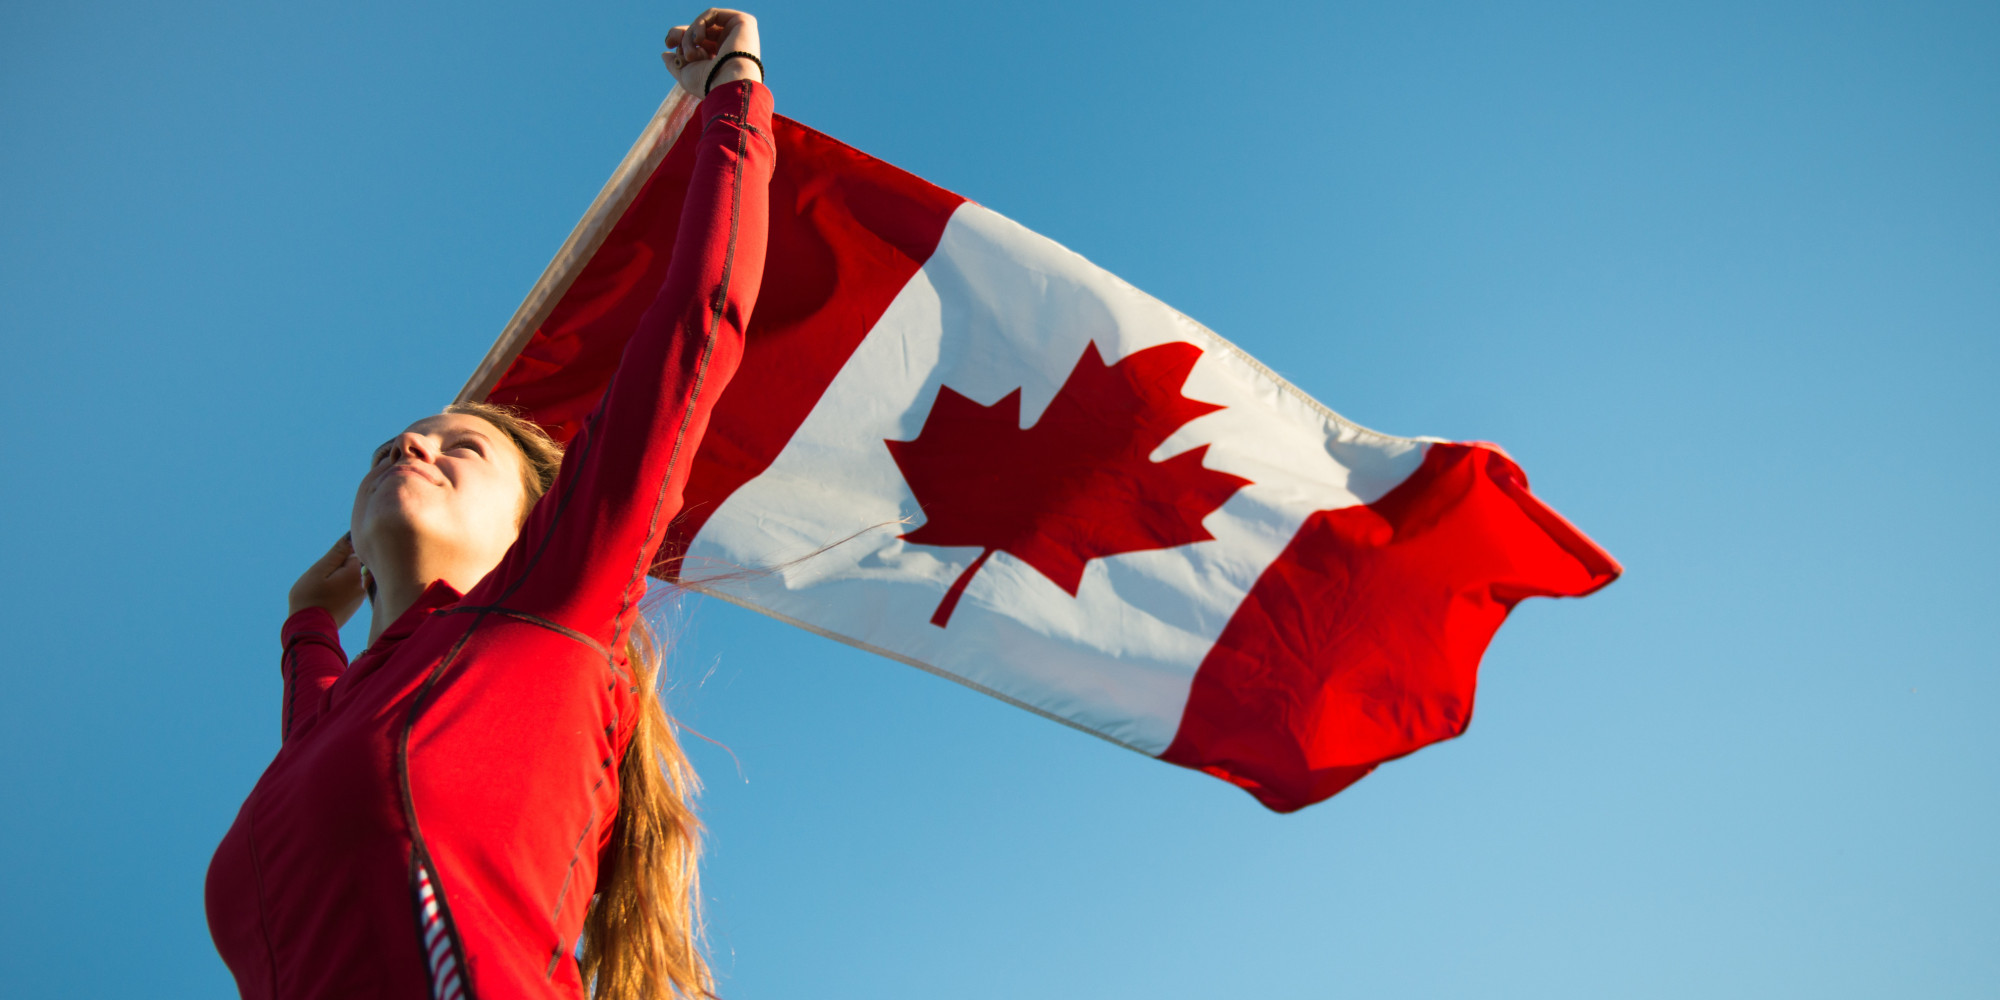 o-TEEN-HOLDING-CANADIAN-FLAG-facebook.jpg